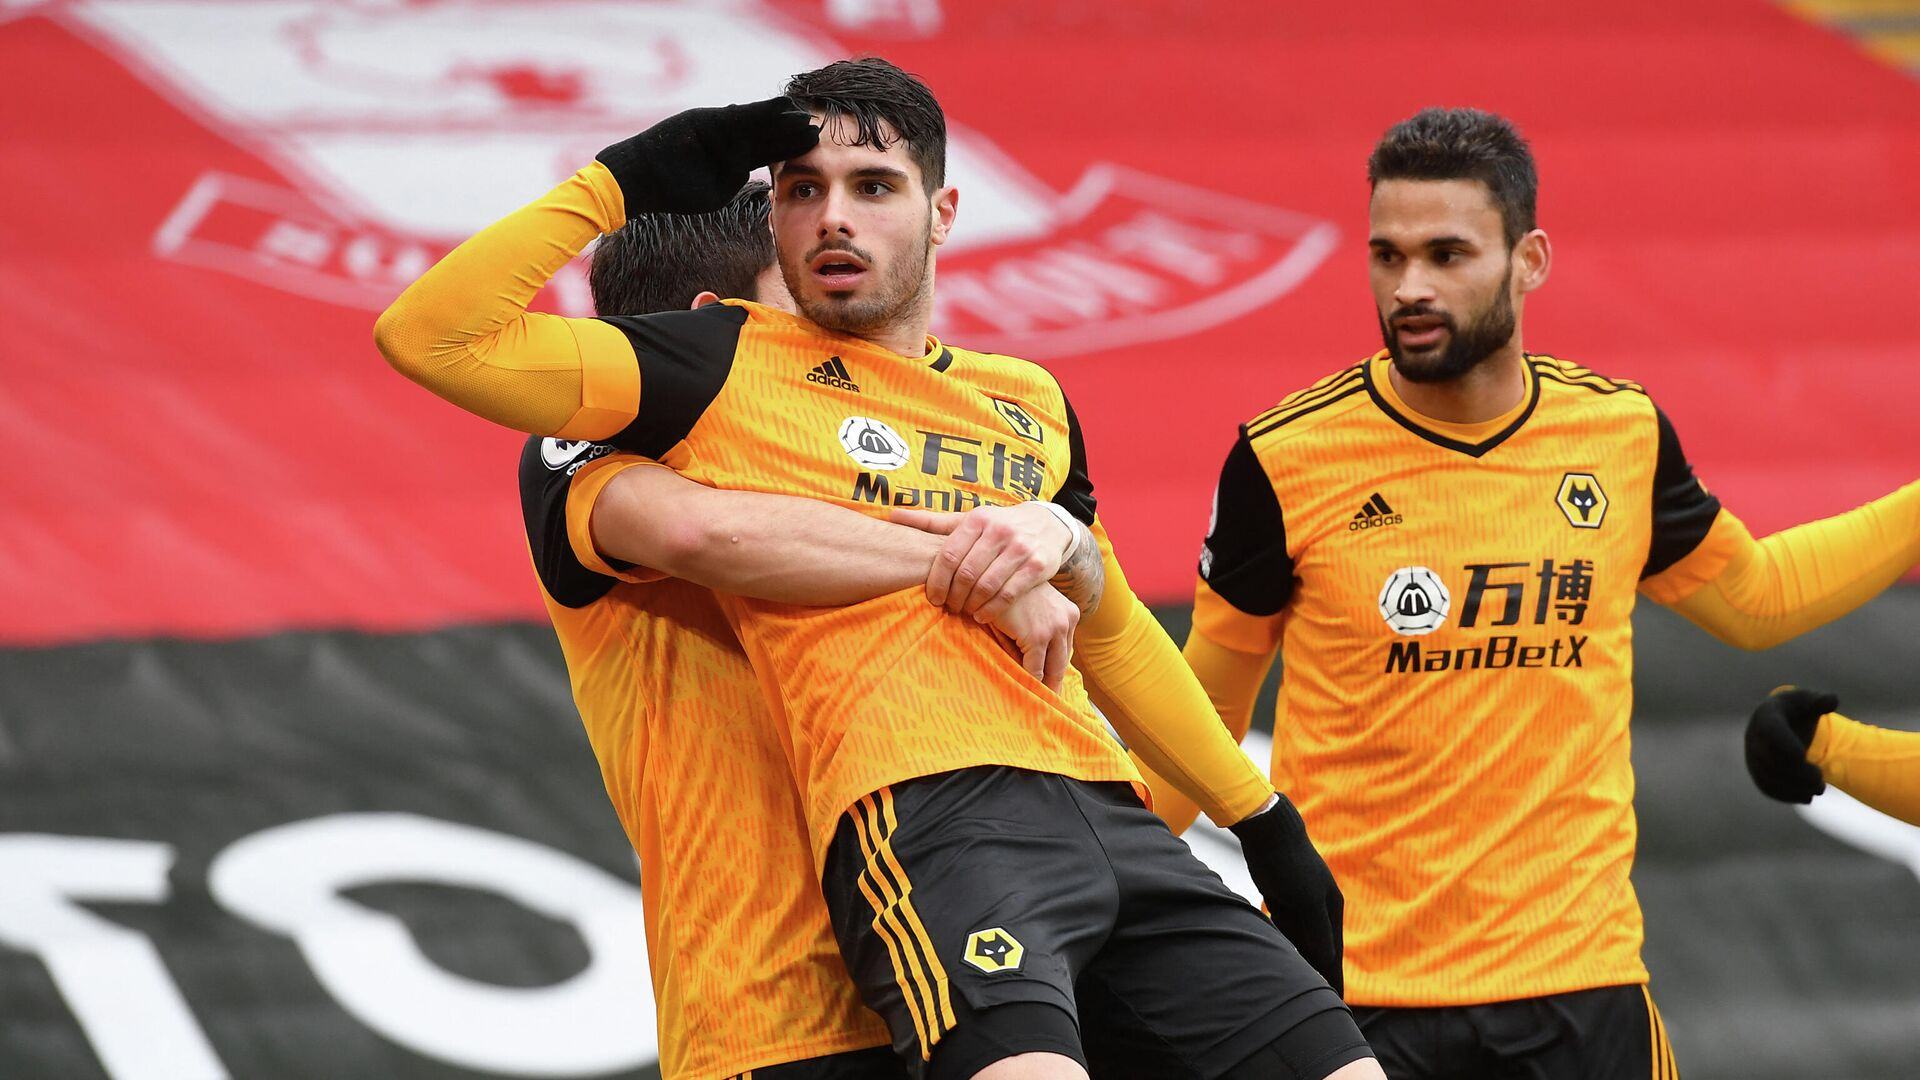 Wolverhampton Wanderers' Portuguese midfielder Pedro Neto (C) celebrates with teammates after scoring their second goal during the English Premier League football match between Southampton and Wolverhampton Wanderers at St Mary's Stadium in Southampton, southern England on February 14, 2021. (Photo by Andy Rain / POOL / AFP) / RESTRICTED TO EDITORIAL USE. No use with unauthorized audio, video, data, fixture lists, club/league logos or 'live' services. Online in-match use limited to 120 images. An additional 40 images may be used in extra time. No video emulation. Social media in-match use limited to 120 images. An additional 40 images may be used in extra time. No use in betting publications, games or single club/league/player publications. /  - РИА Новости, 1920, 14.02.2021